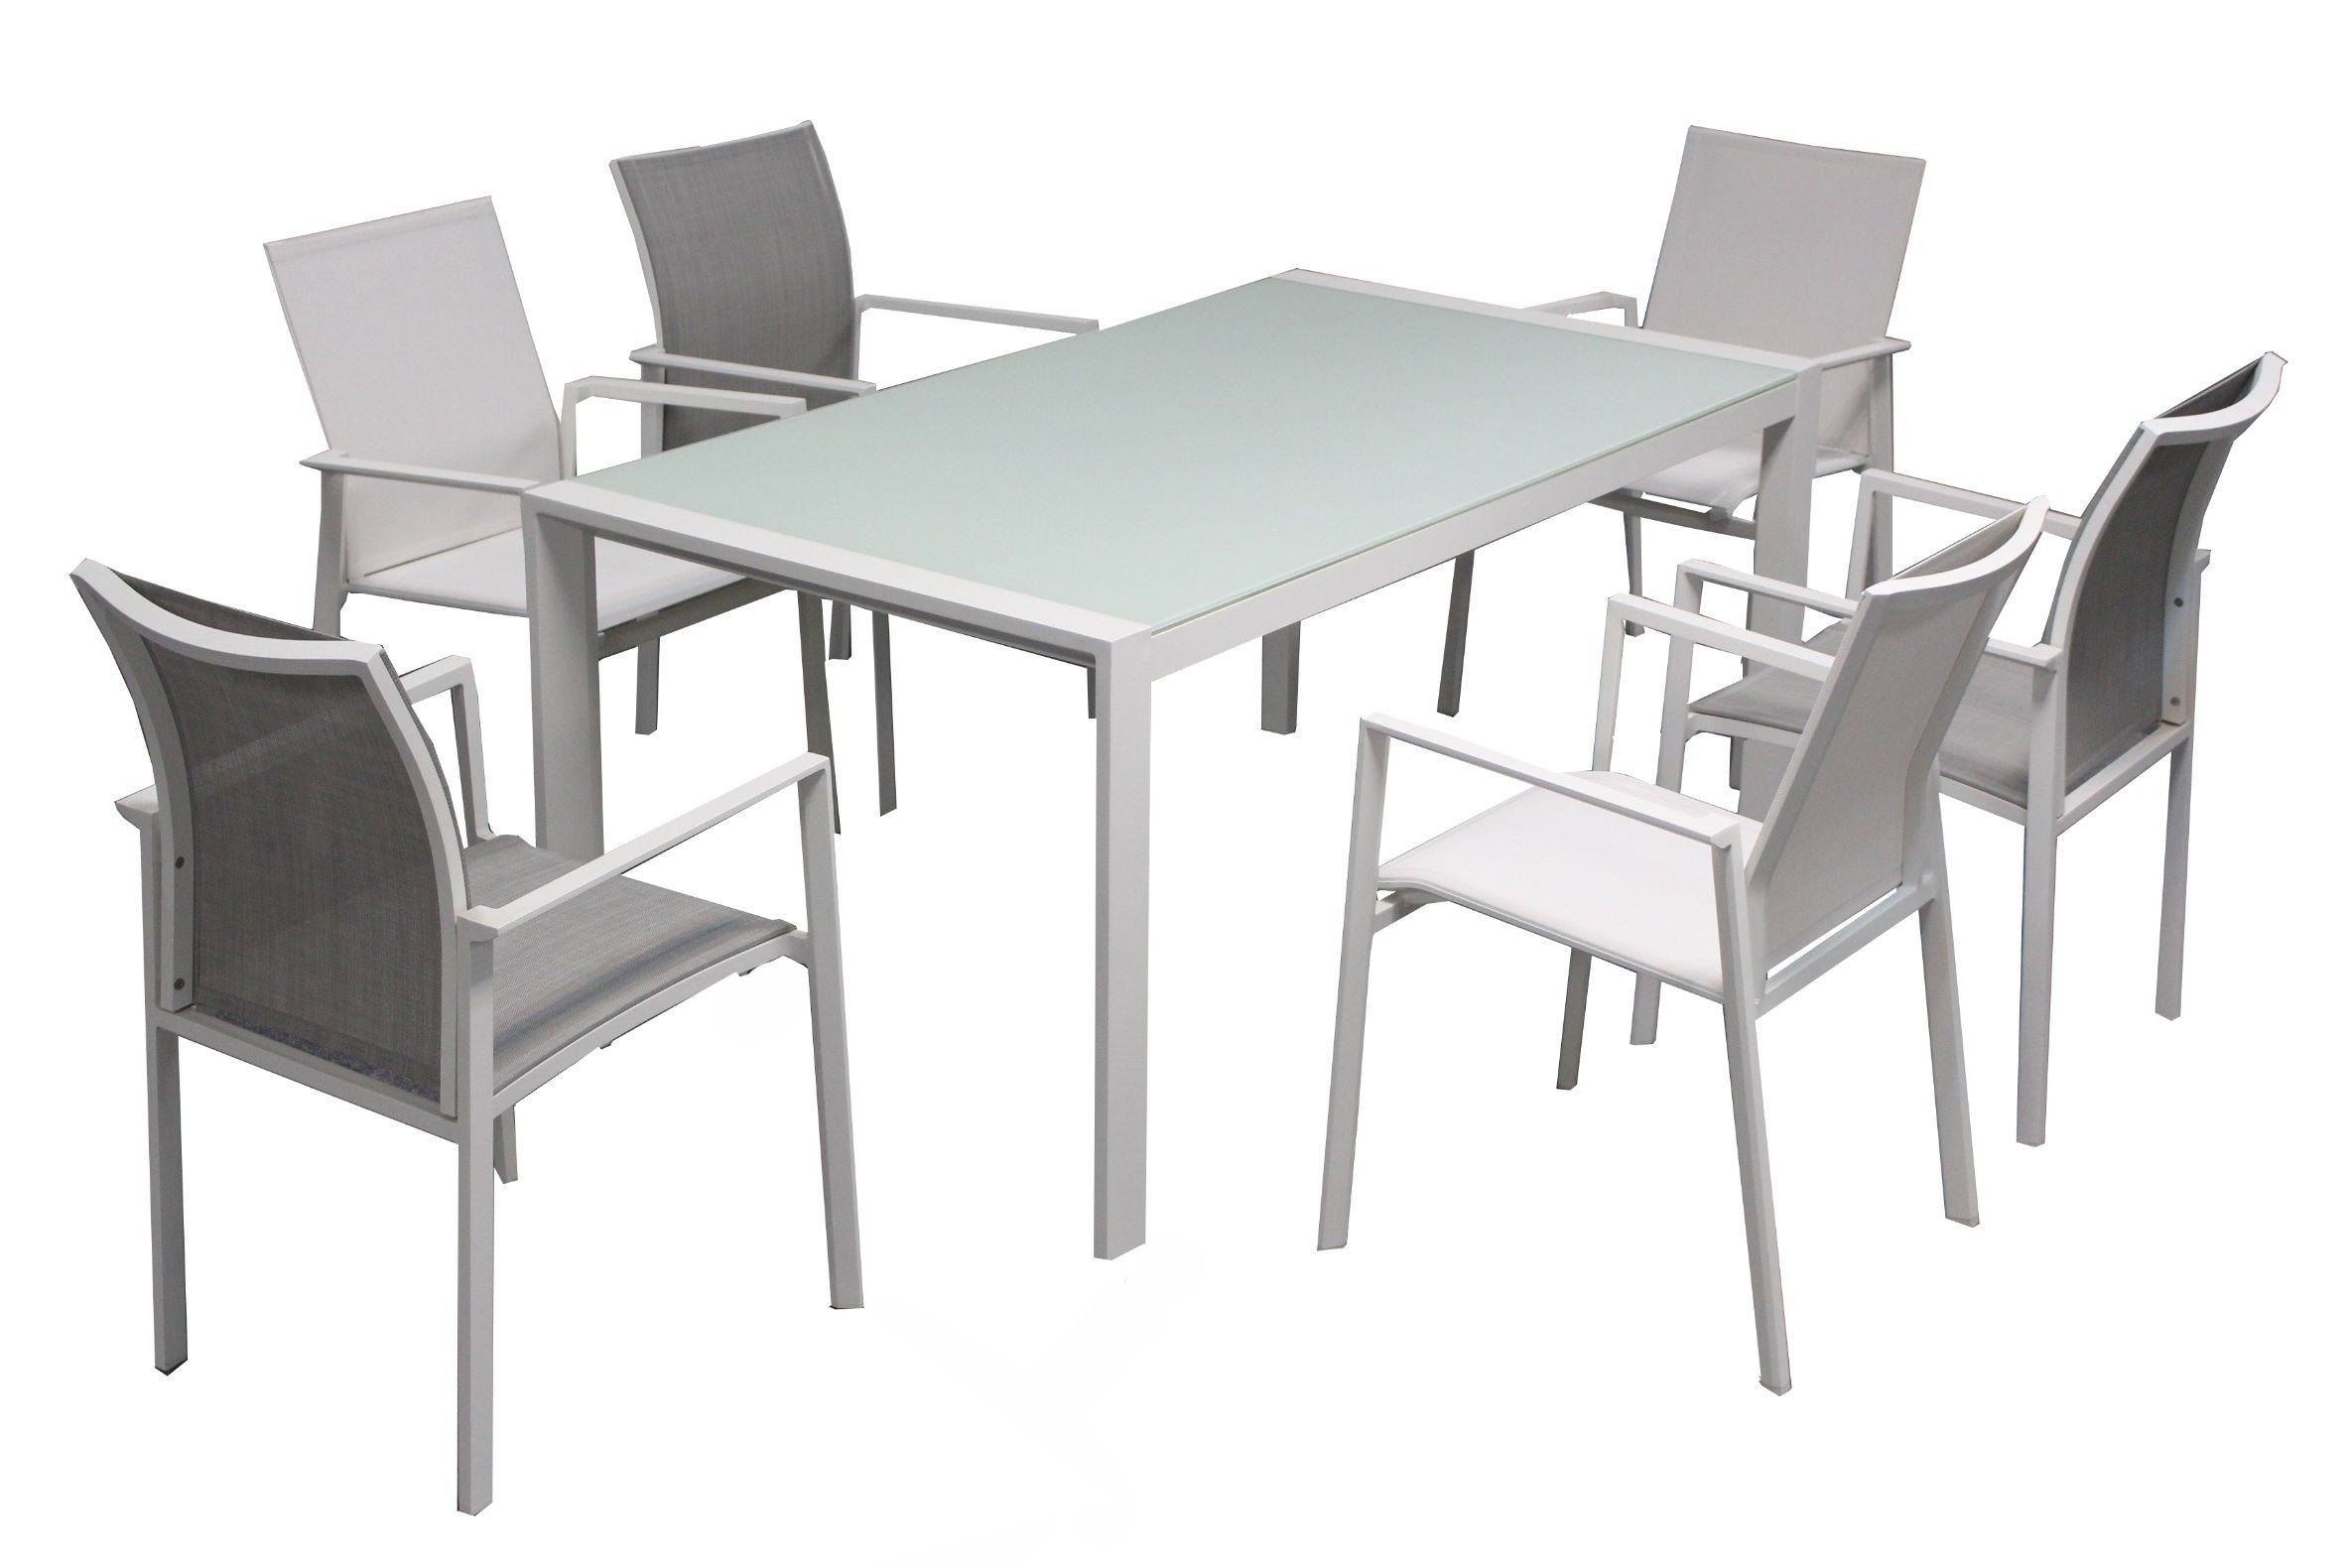 Powder Coating Aluminum Dining Set Textylene Outdoor Dining Set Batyline Chair